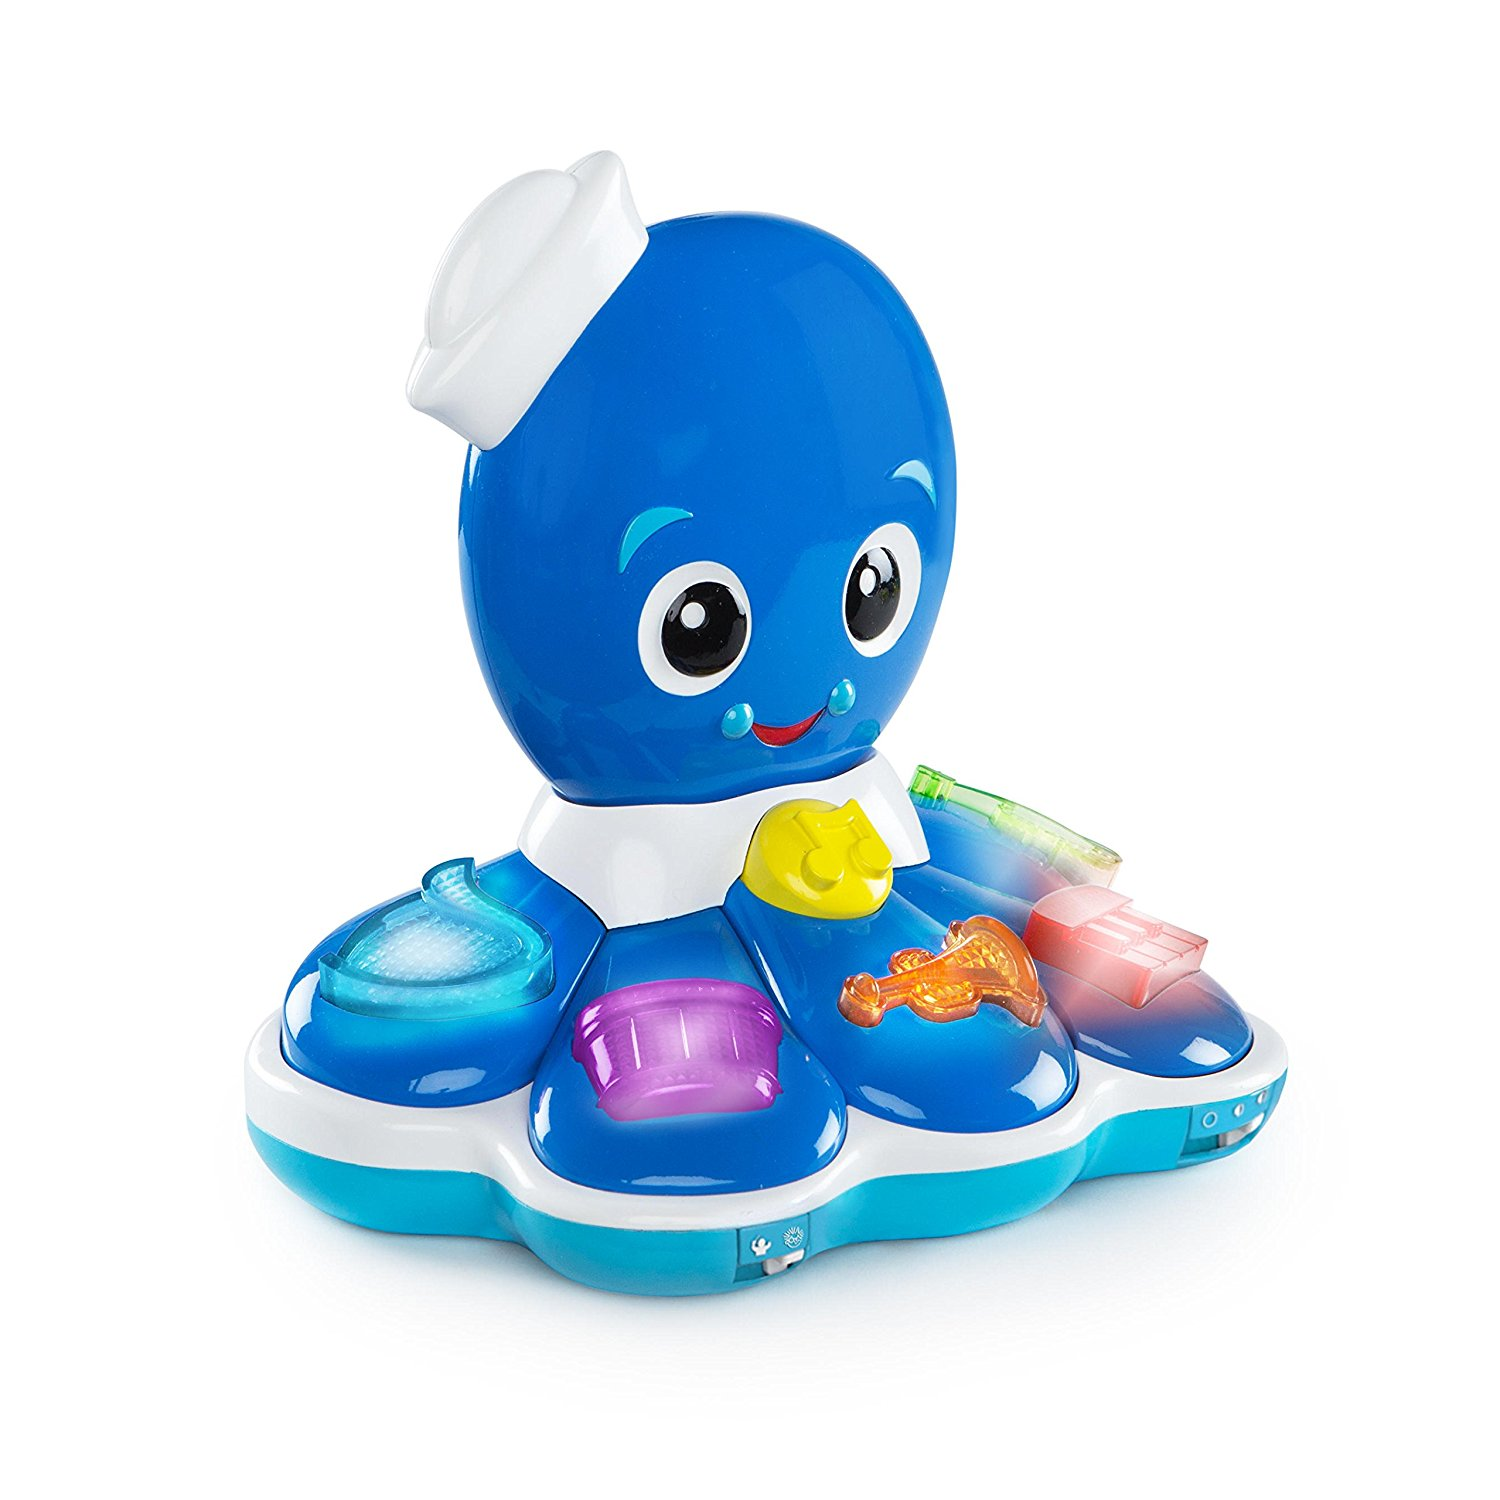 Octopus Orchestra, 2 modes of play: Discovery & Composer Mode By Baby Einstein Ship from... by